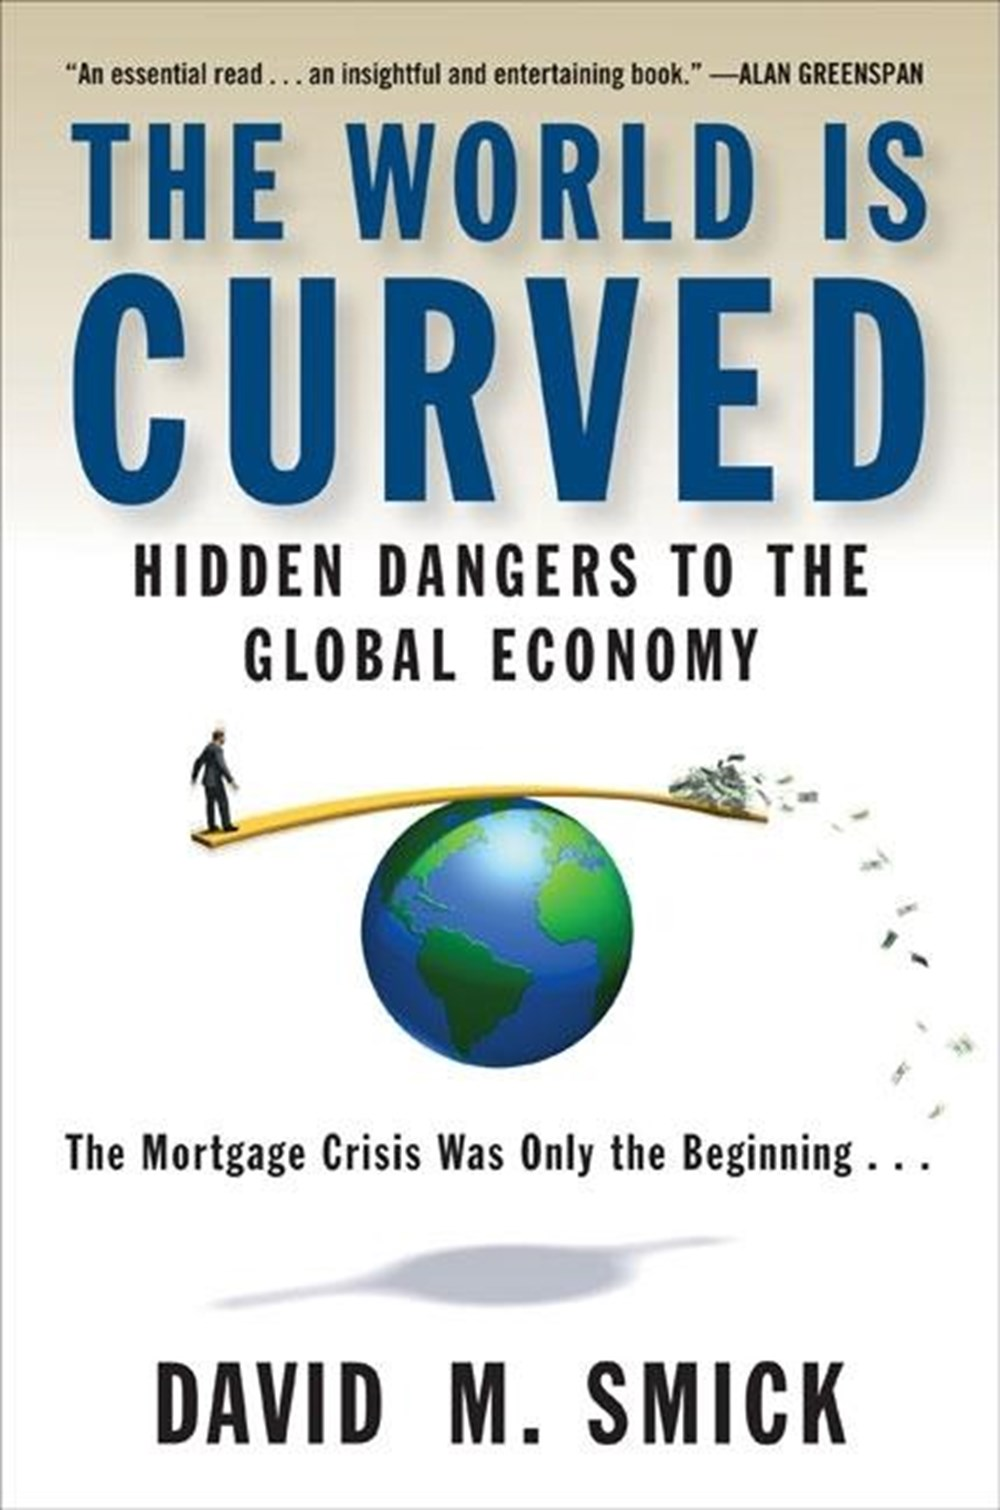 World Is Curved Hidden Dangers to the Global Economy